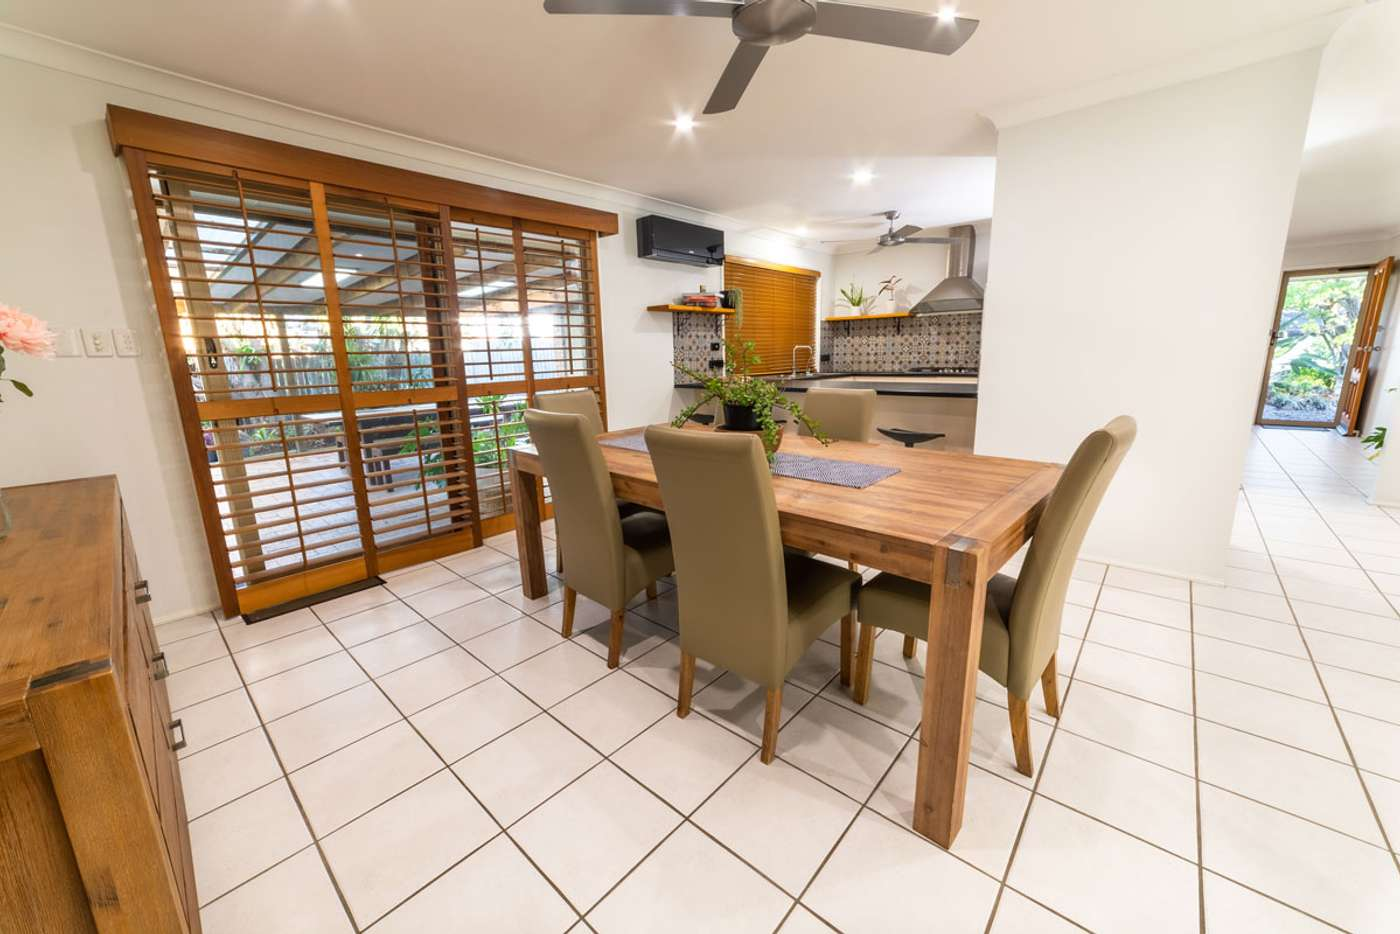 Sixth view of Homely house listing, 62 Edenlea Drive, Meadowbrook QLD 4131